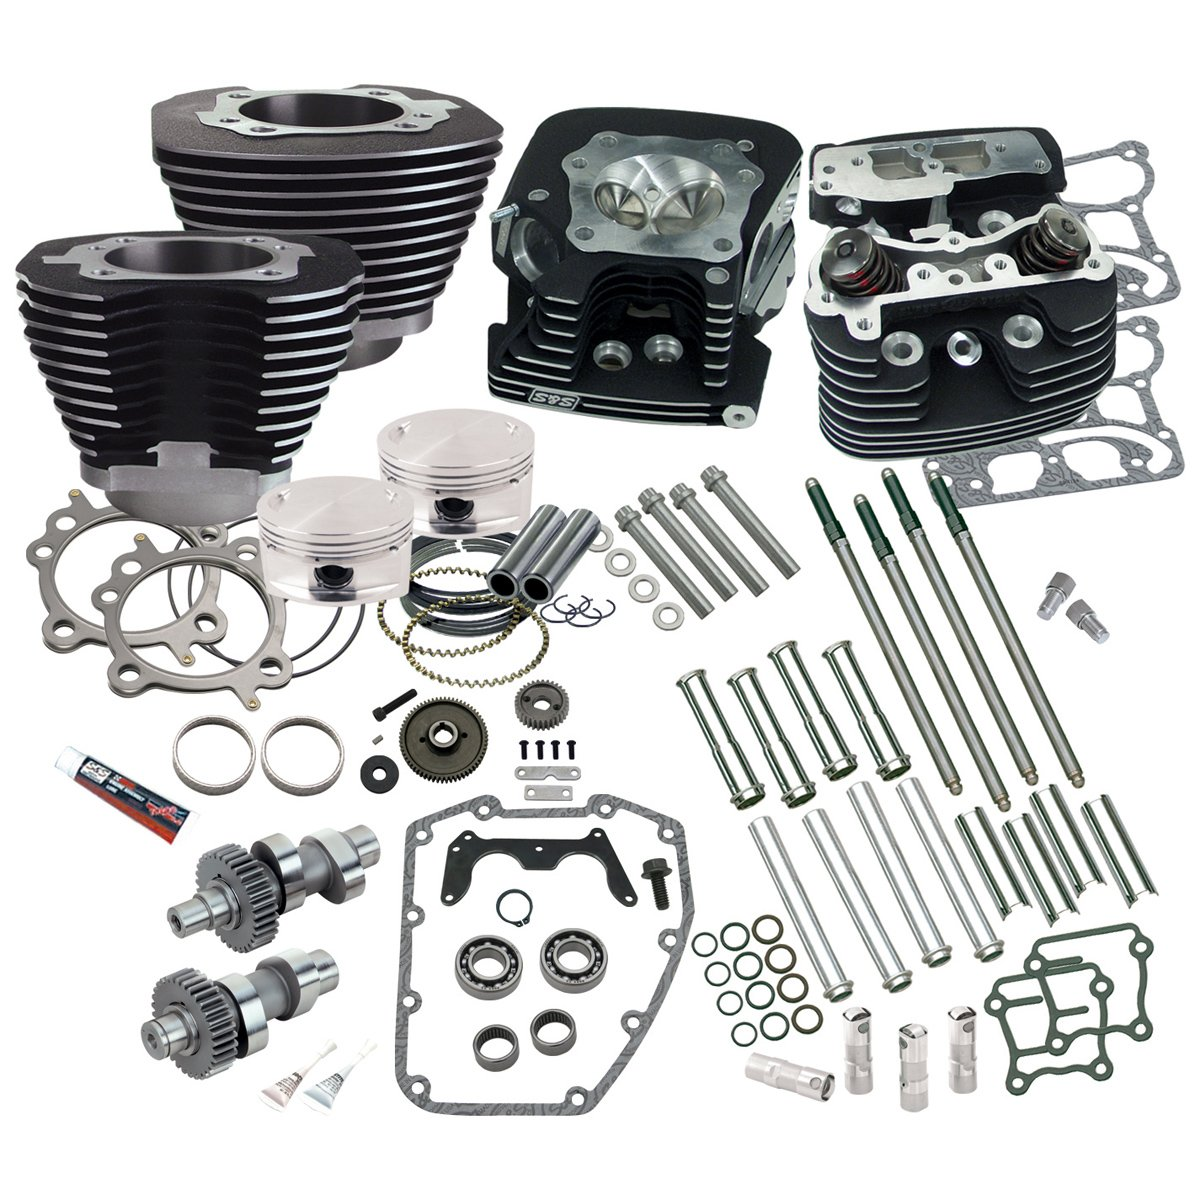 Ss Cycle 95 Hot Set Up Kit For 88 Engines 106 0214 Harley Davidson Timing Belt Automotive